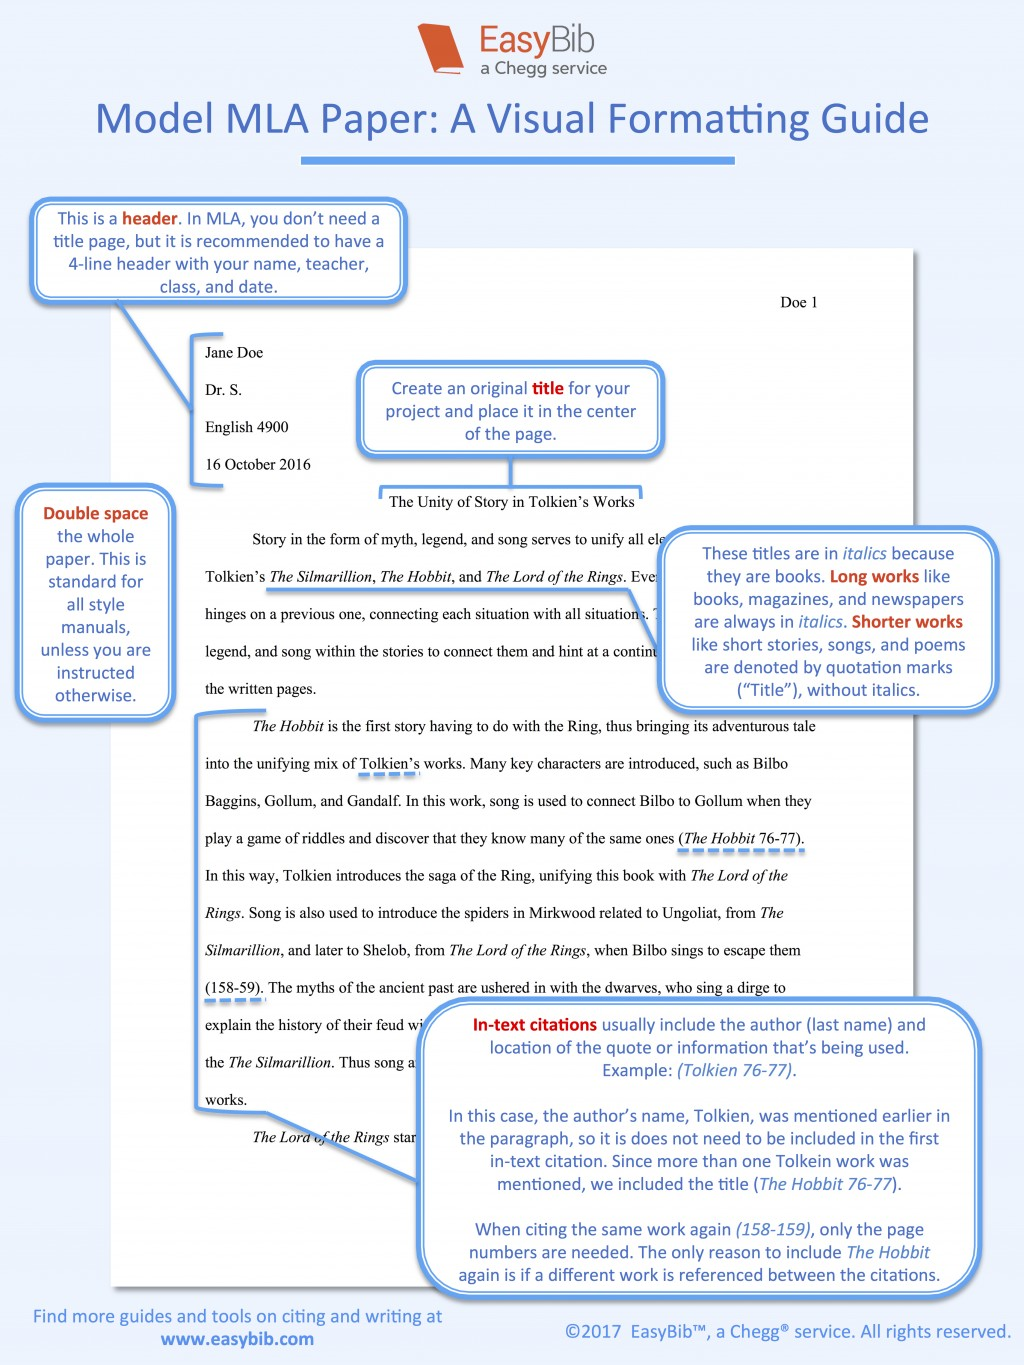 002 Model Mla Paper Research Apa Citation Style Shocking Format Large